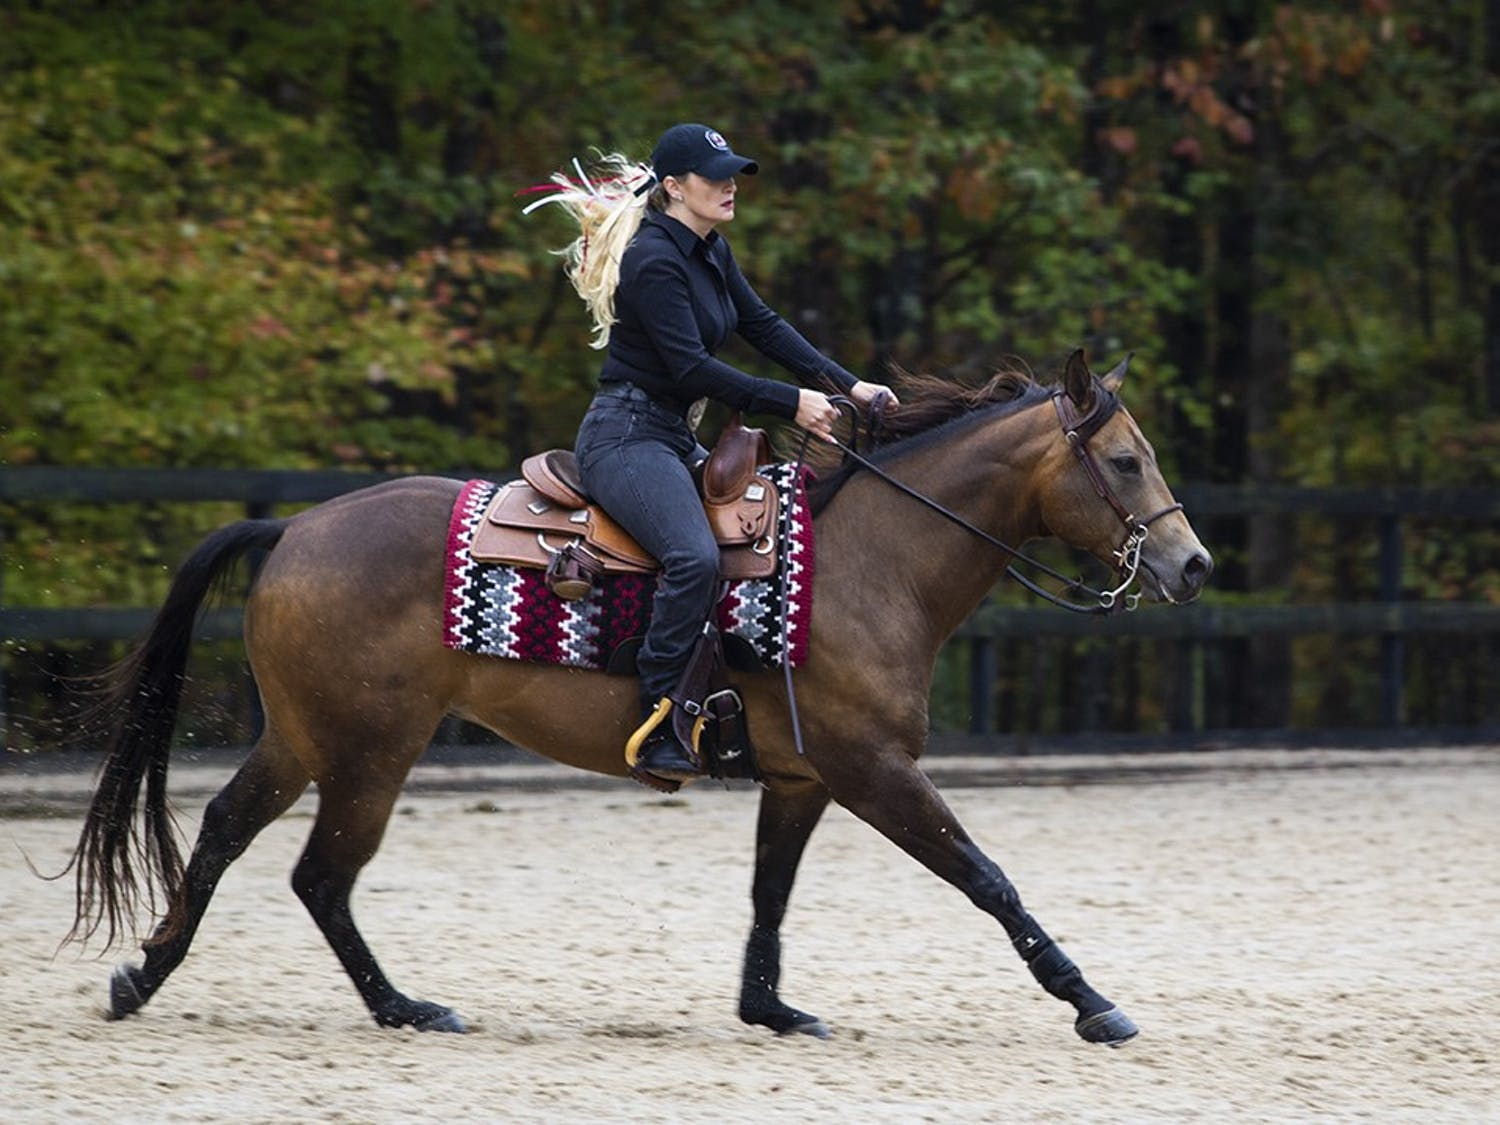 South Carolina senior Caroline Gute riding on Stoner during their reining event. Gute scored a 70.0 on her ride.